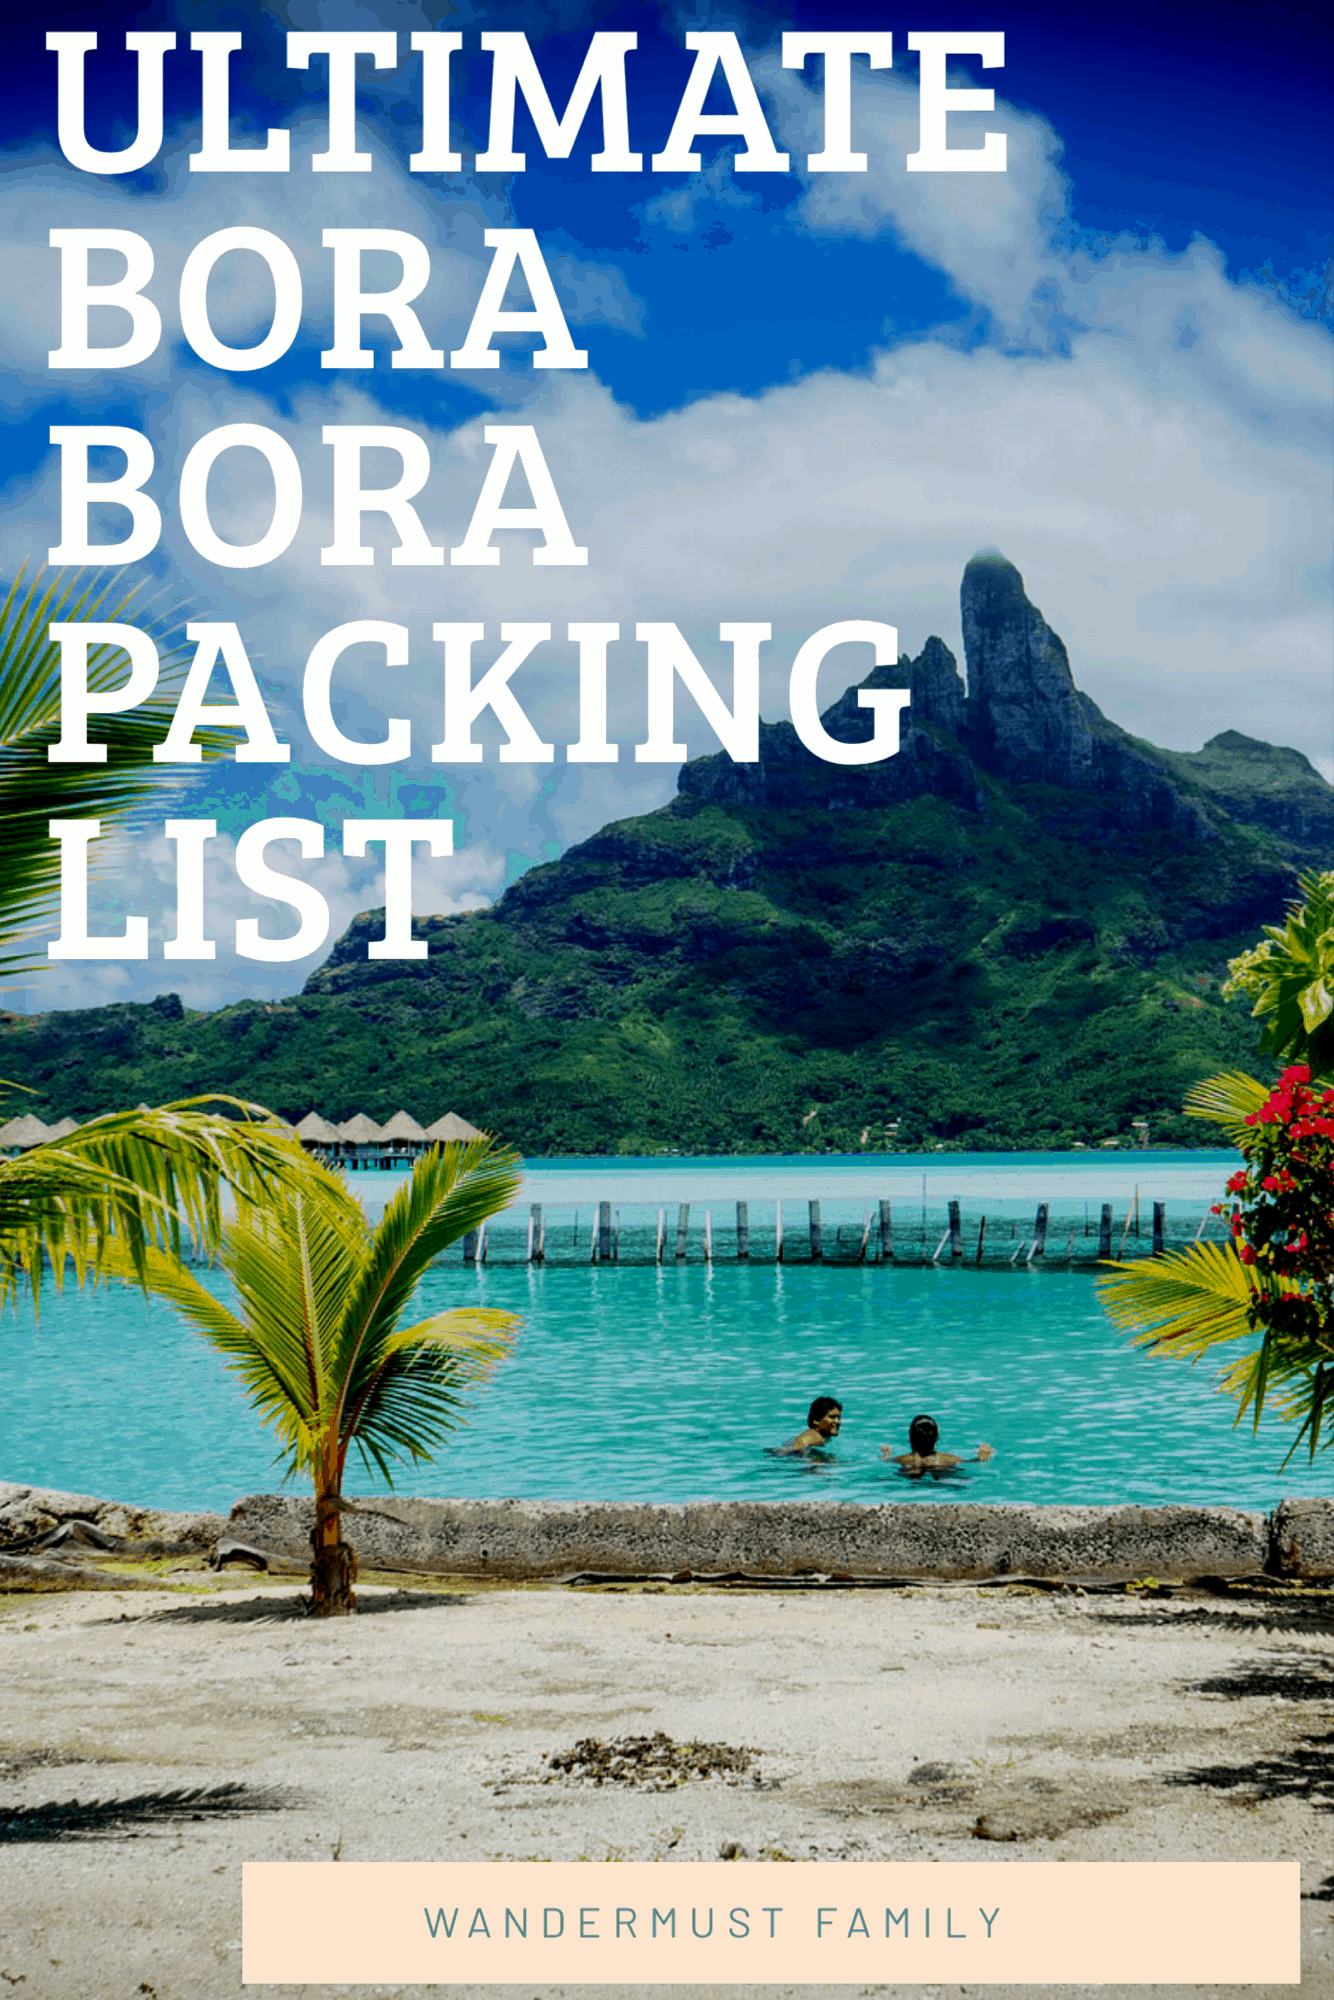 Ultimate Bora Bora Packing List